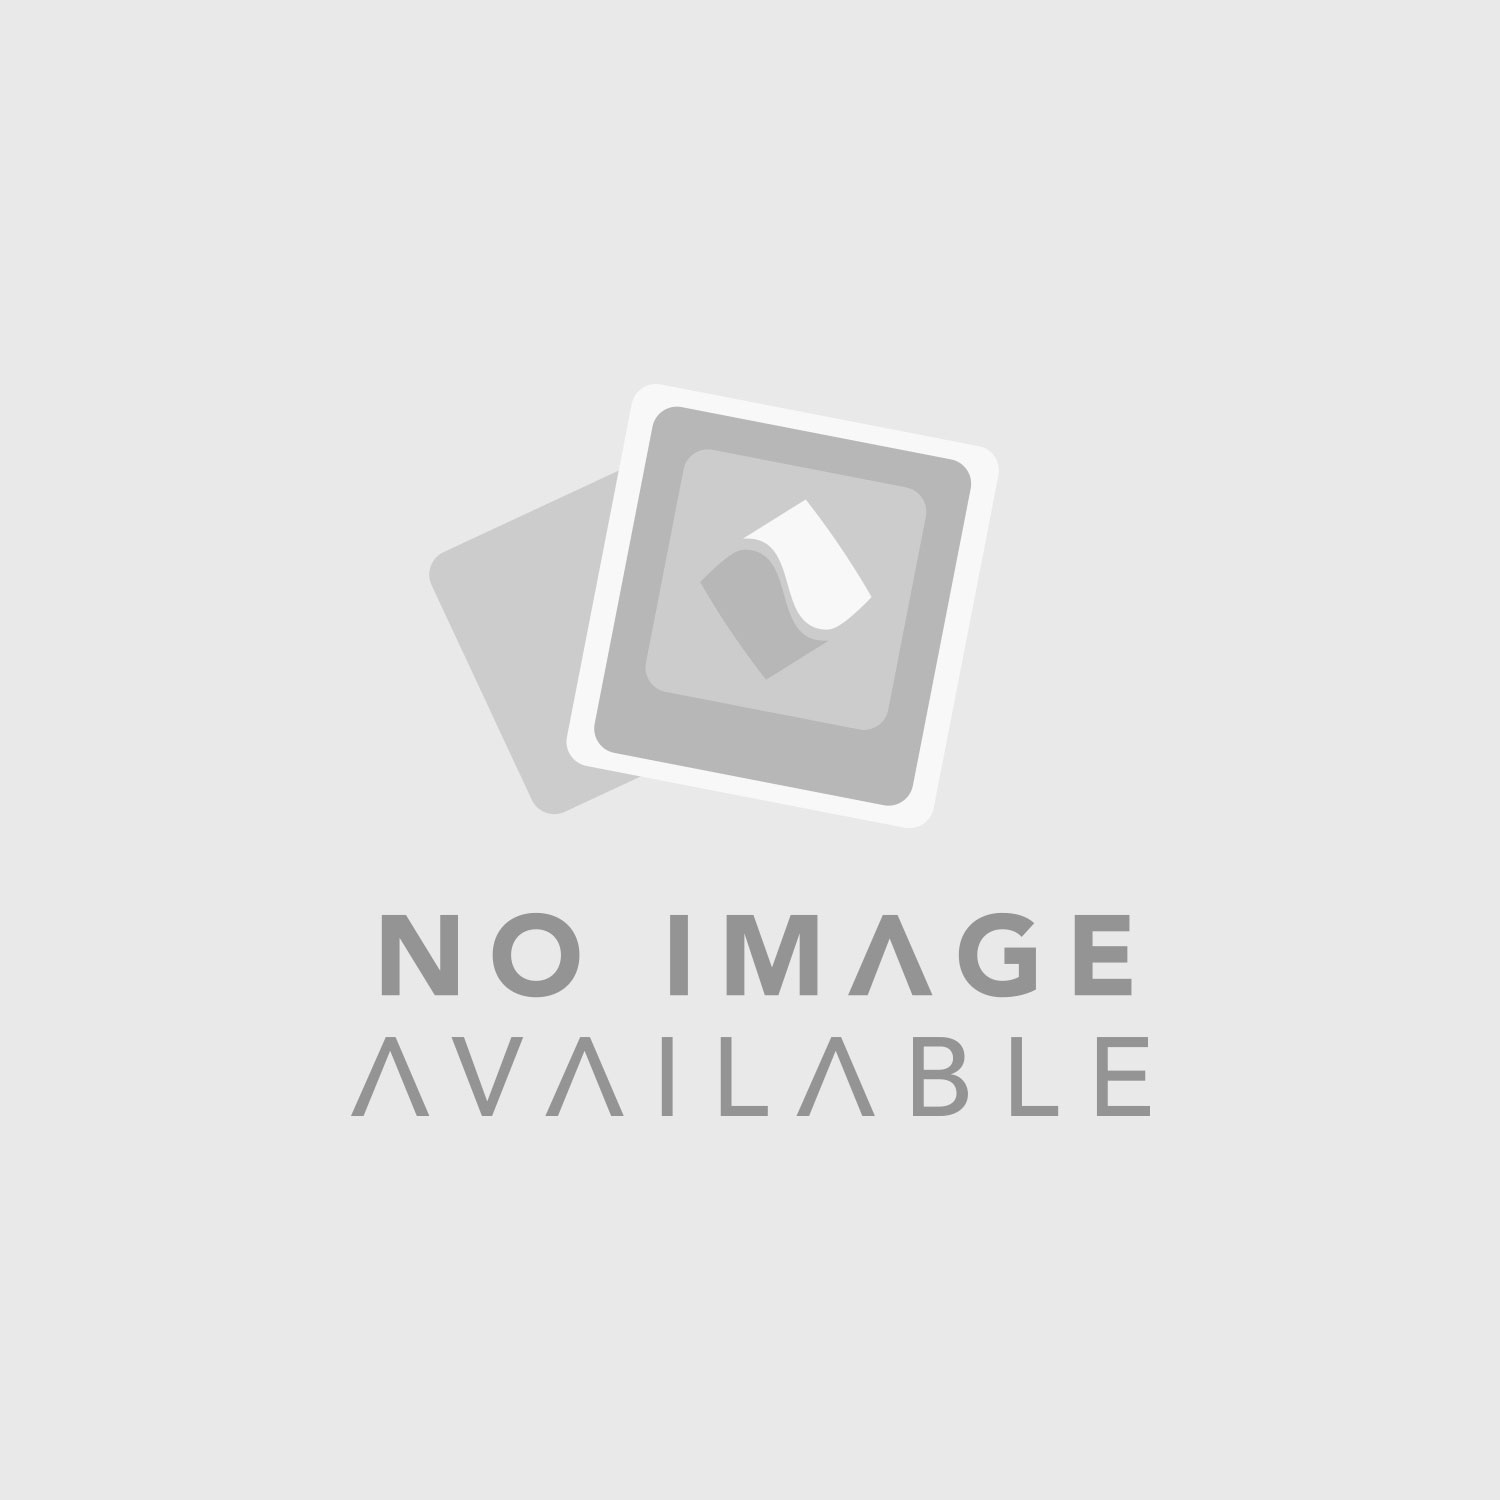 C2G Active High Speed HDMI Cable 4K 30Hz - In-Wall, CL3-Rated (75')